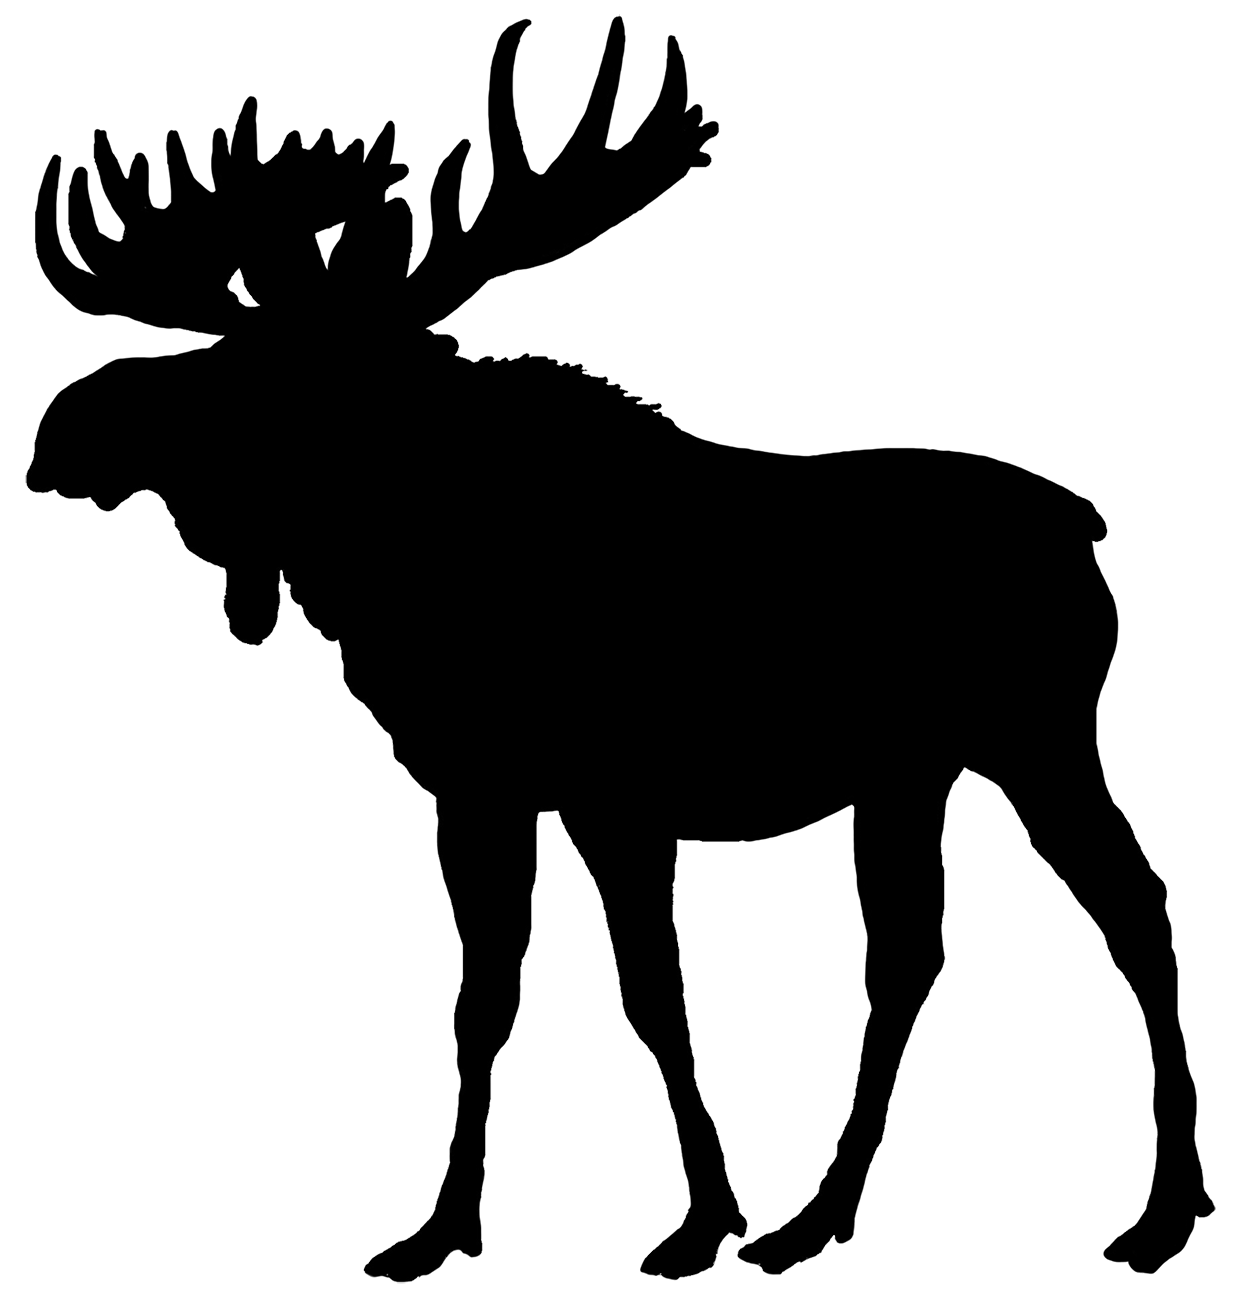 moose silhouette moose silhouette vector free clipart best silhouette moose